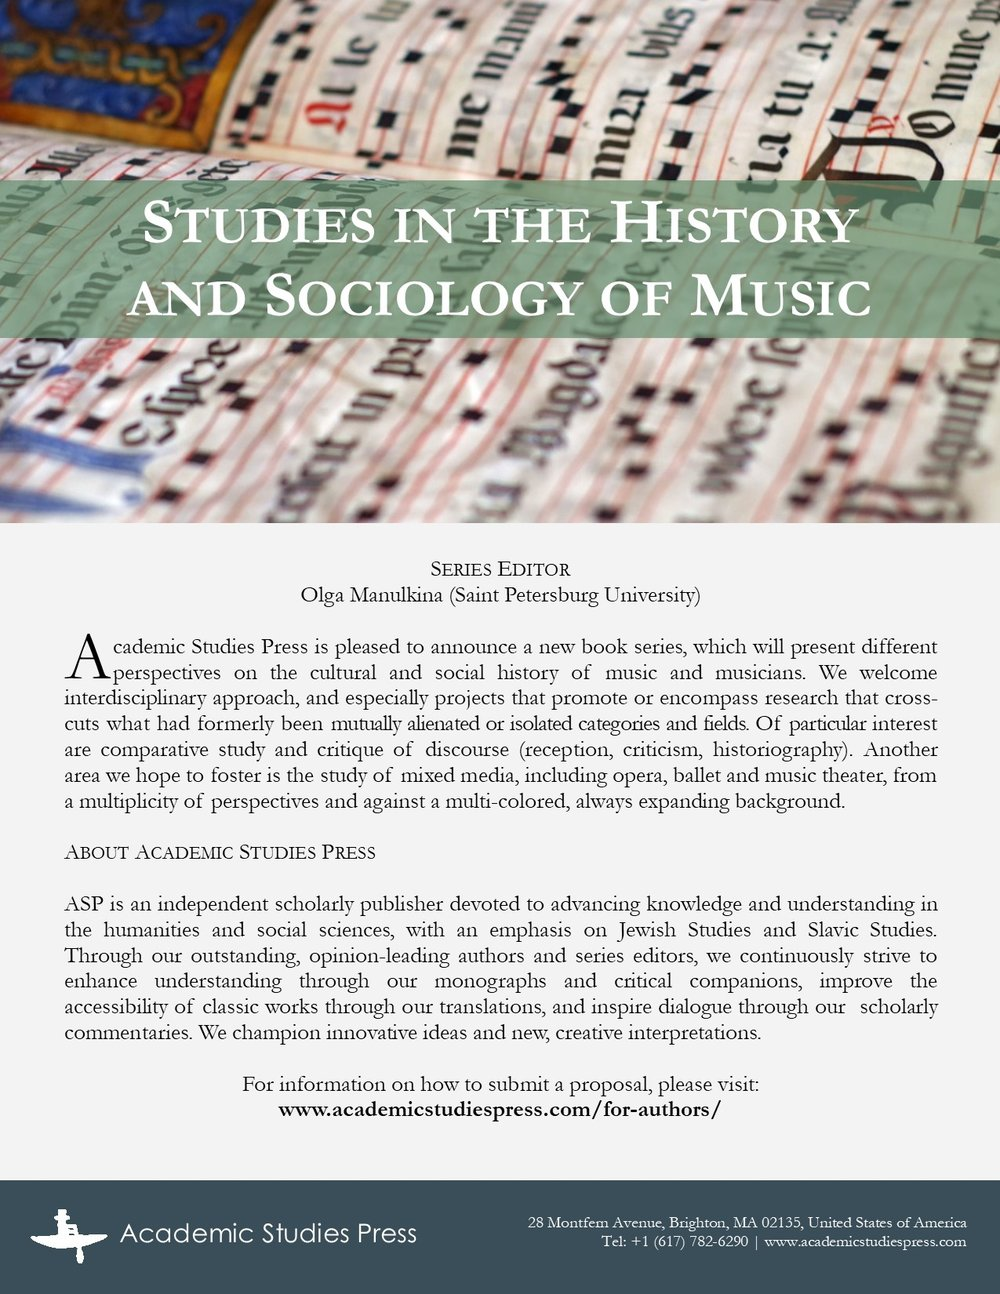 Studies in the History and Sociology of Music Flyer.jpg